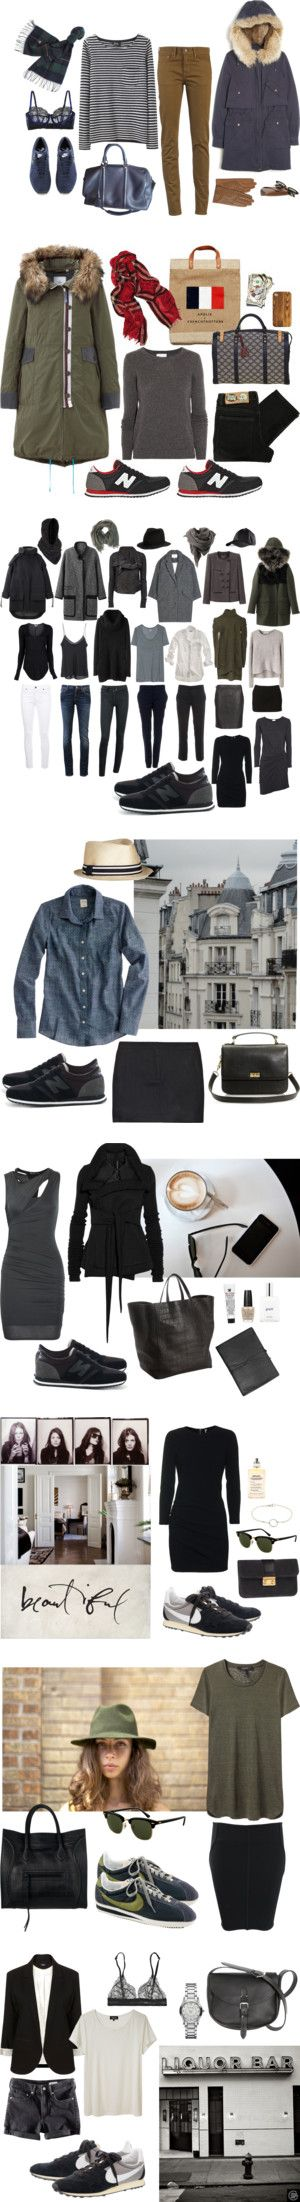 """""""Sneakers"""" by coffeestainedcashmere ❤ liked on Polyvore"""